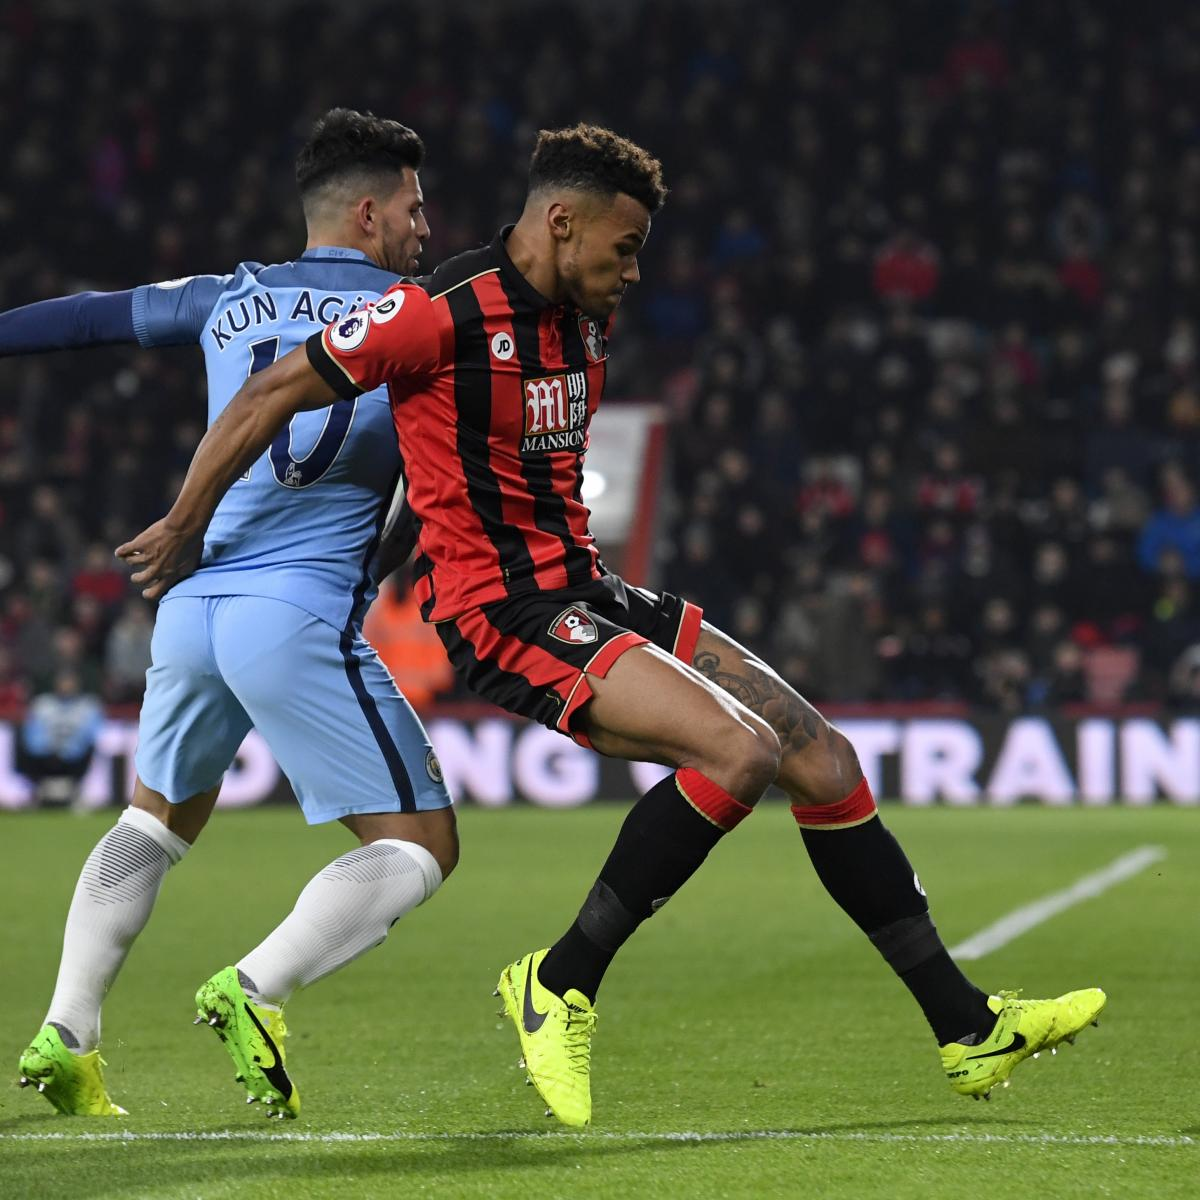 bournemouth vs man city - HD 1200×1200